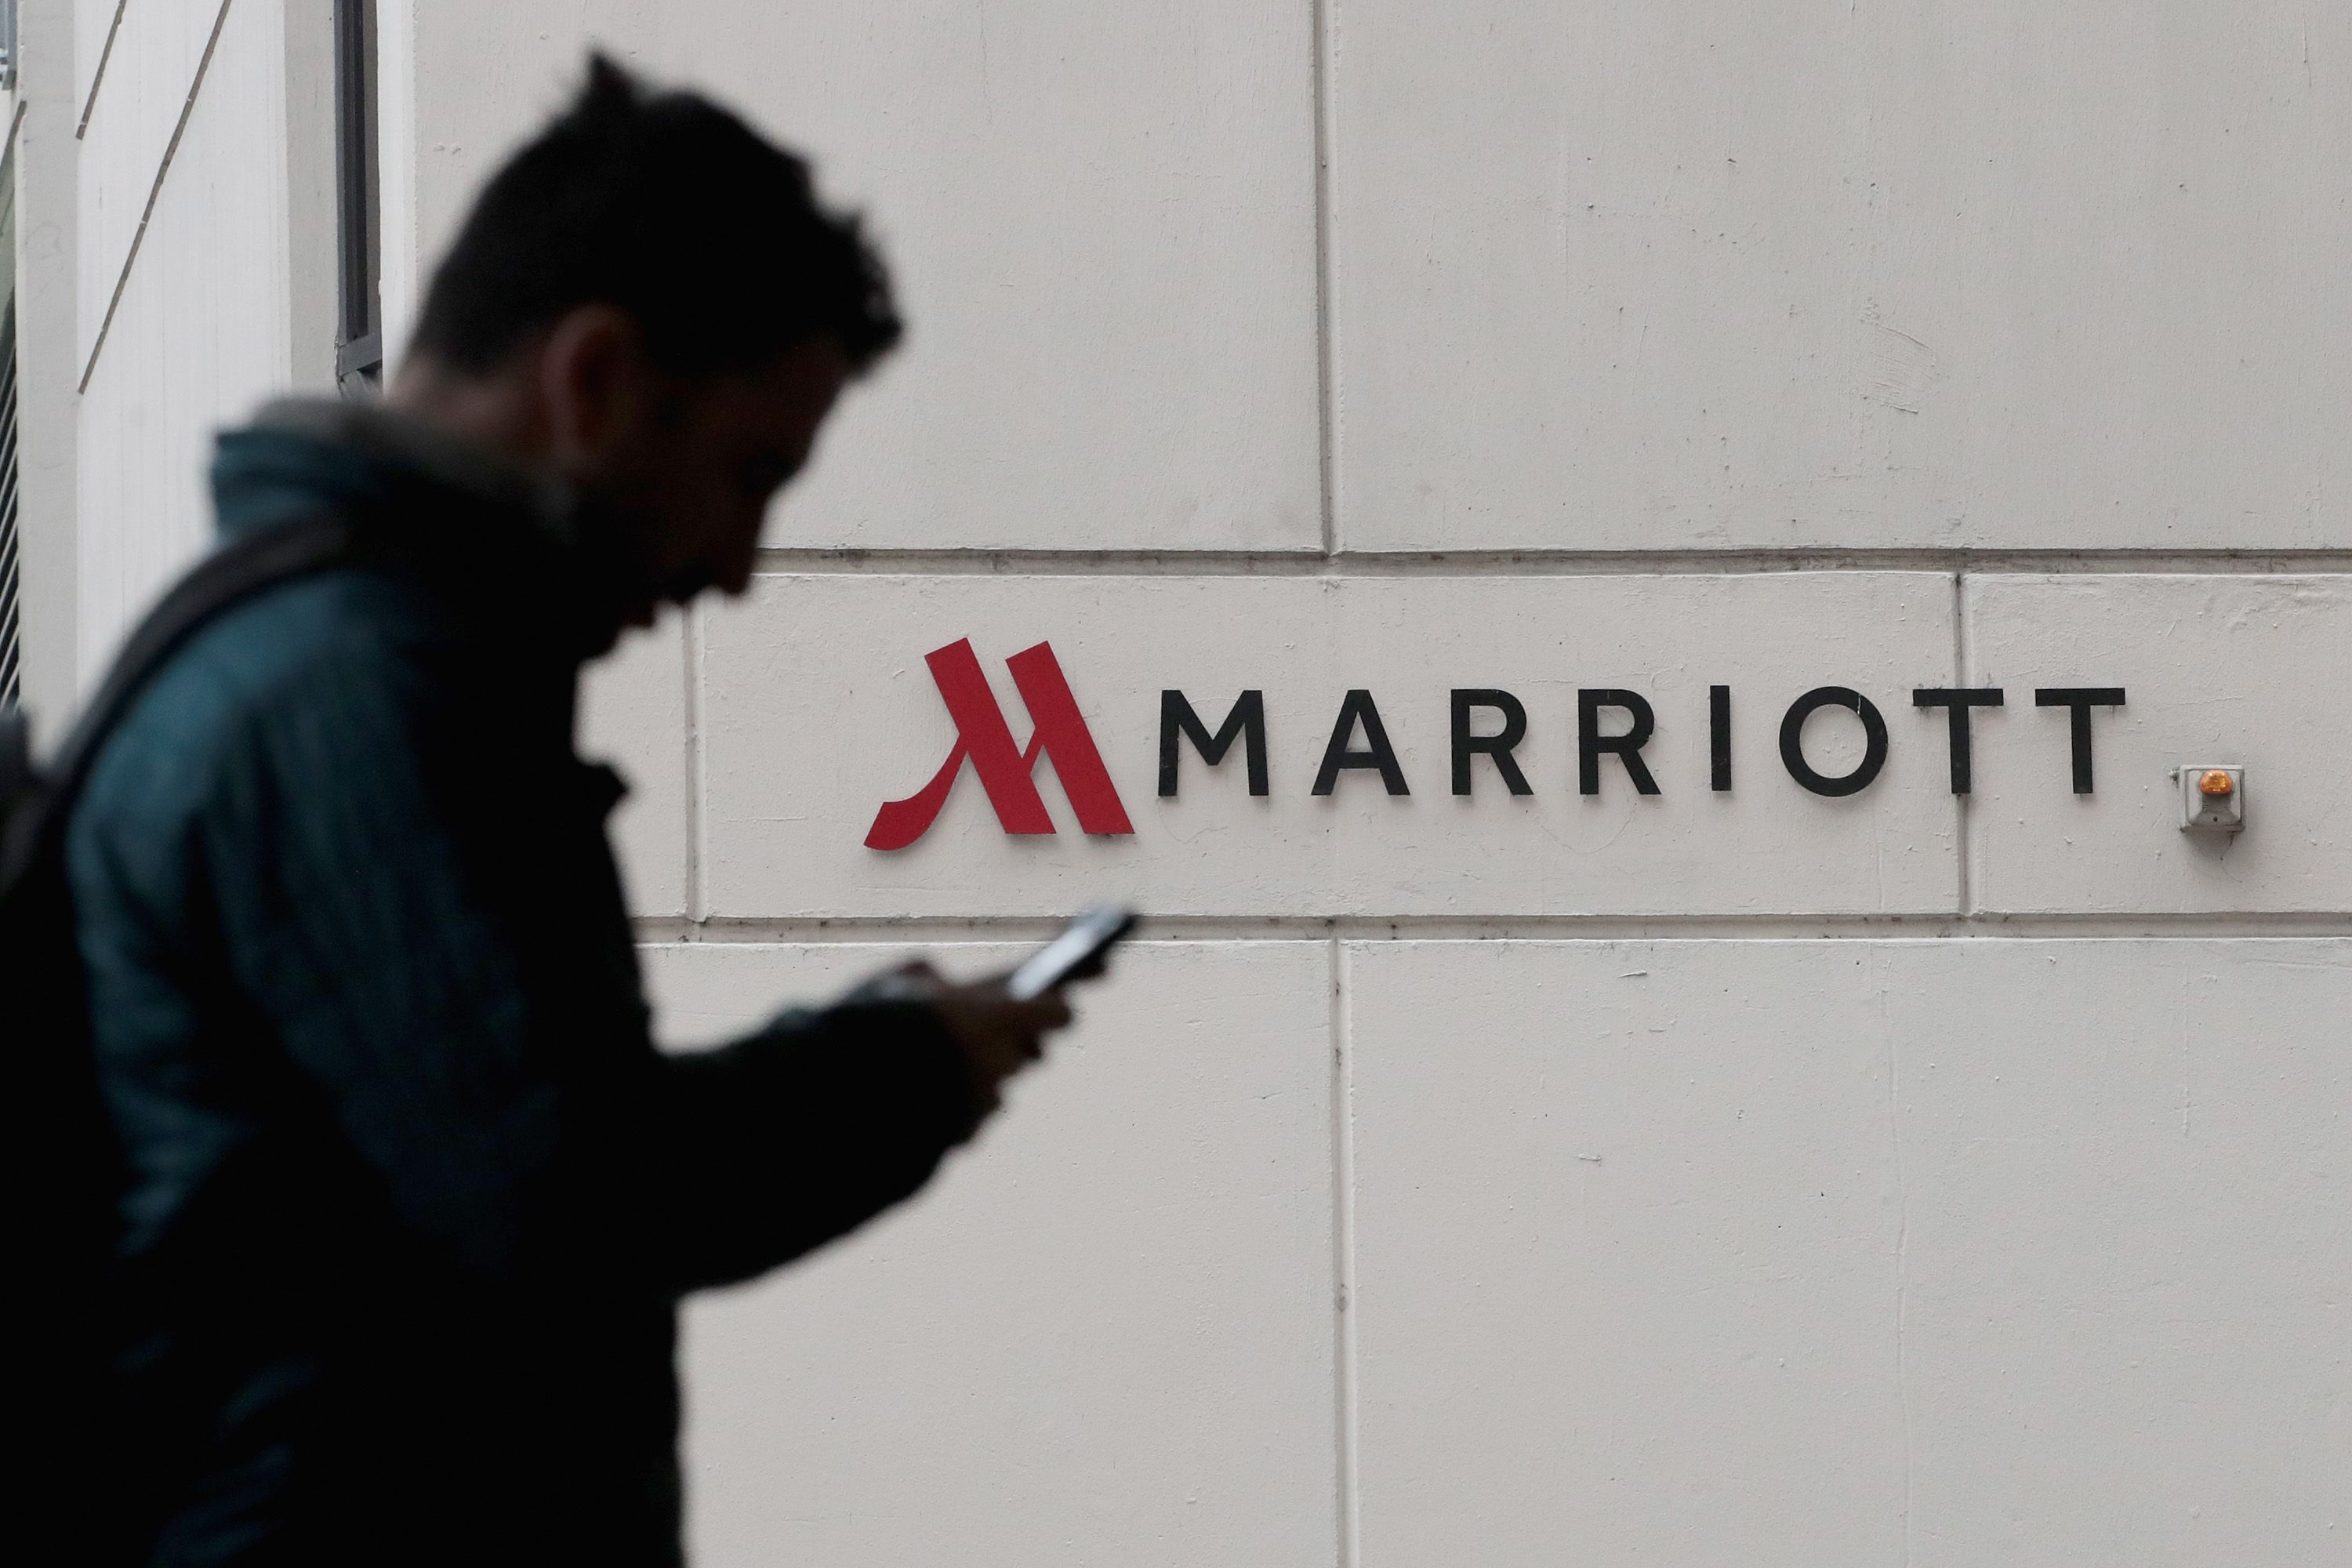 As you have no doubt heard by now, Marriott disclosed a